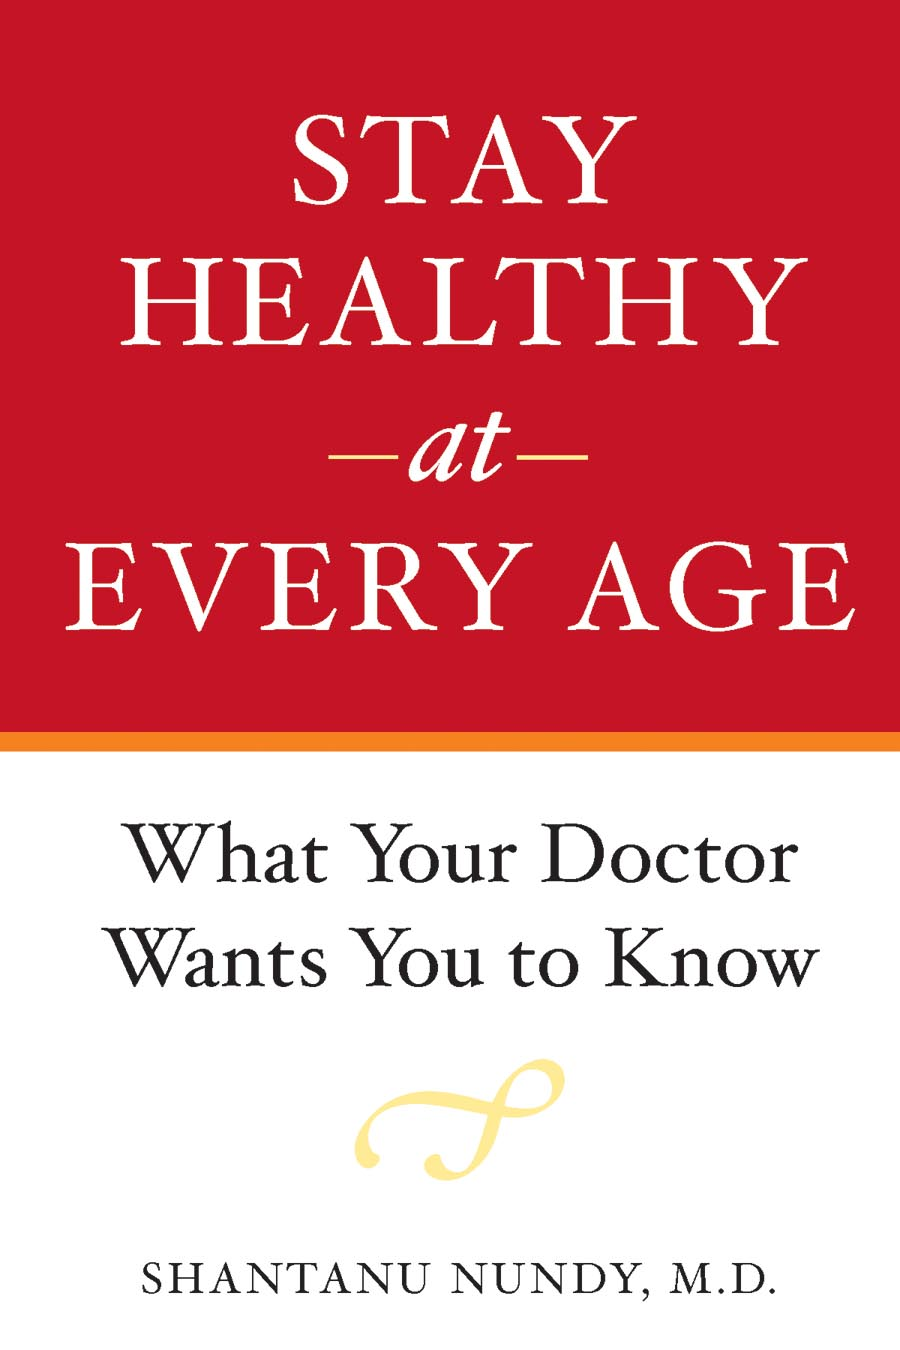 Stay Healthy at Every Age – What Your Doctor Wants You to Know paul barshop capital projects what every executive needs to know to avoid costly mistakes and make major investments pay off